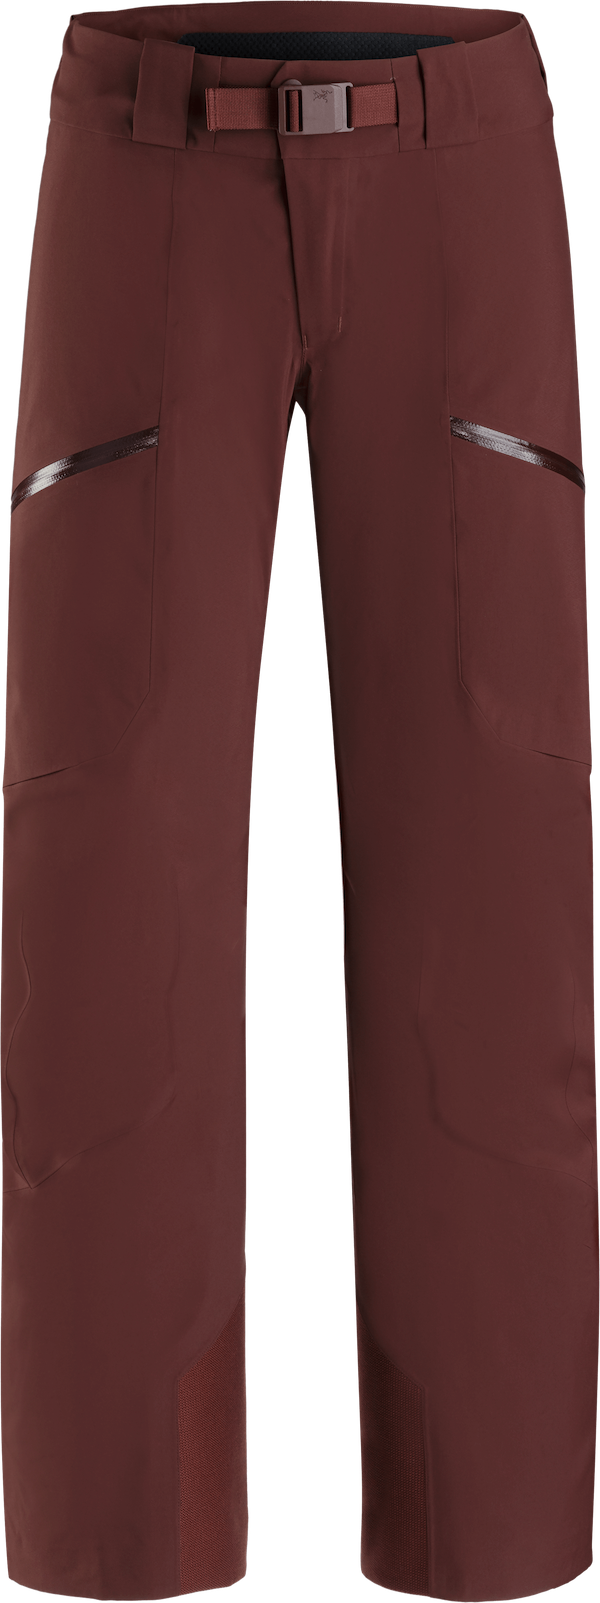 Arcteryx Women's Sentinal AR Pants 2019-20 at Northern Ski Works 1